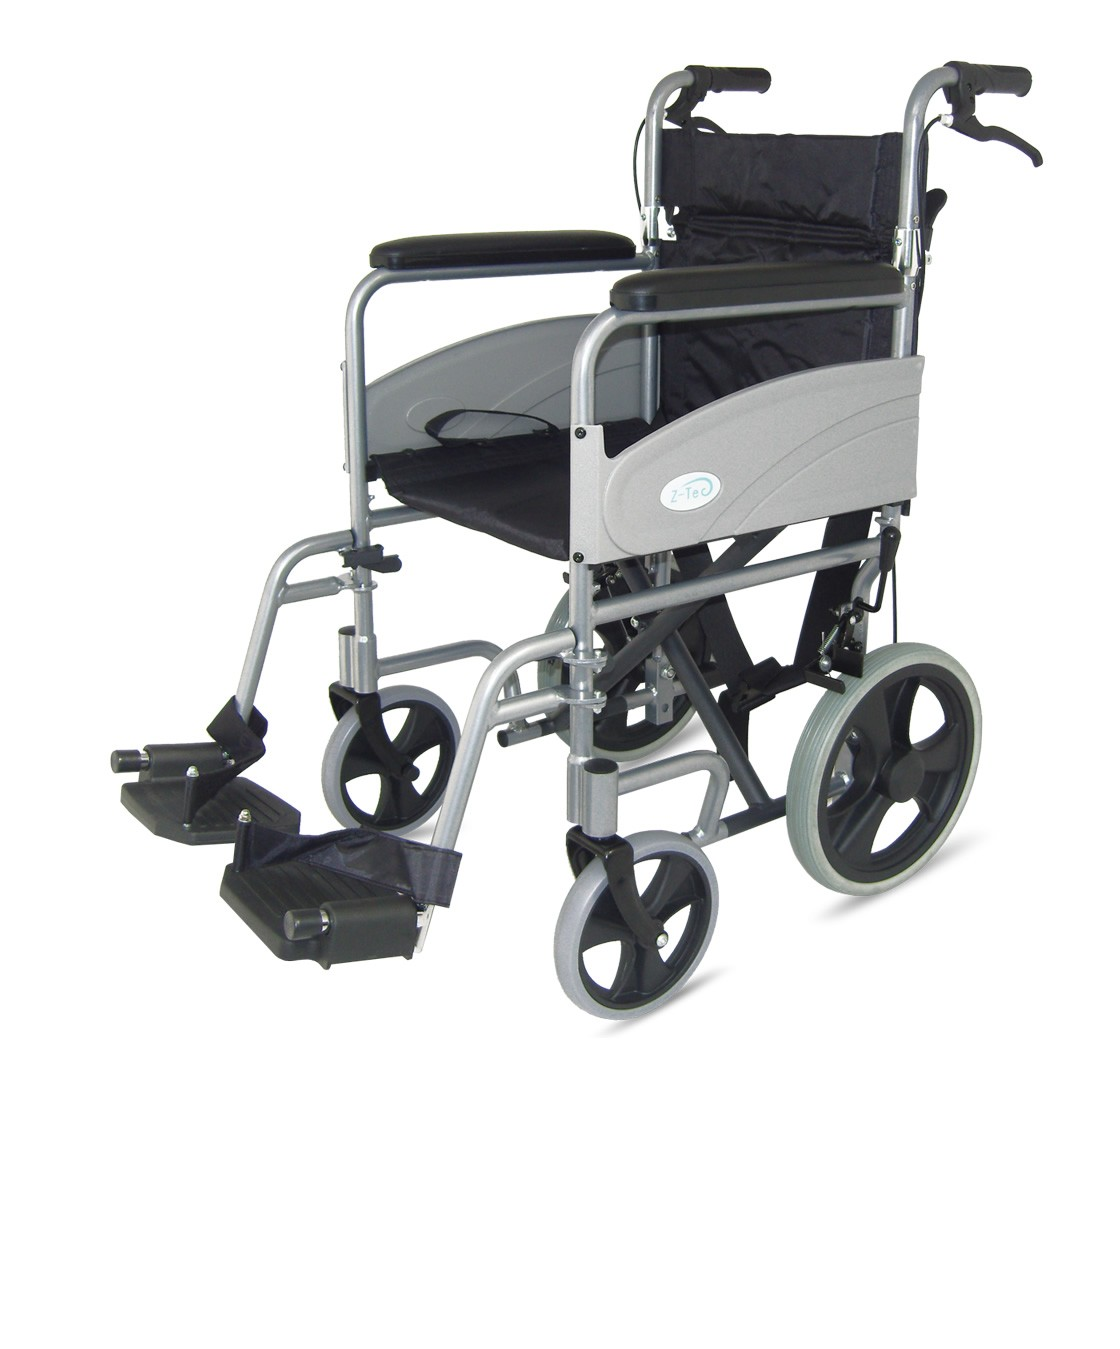 Folding Transit Wheelchair with attendant brake from z-tec